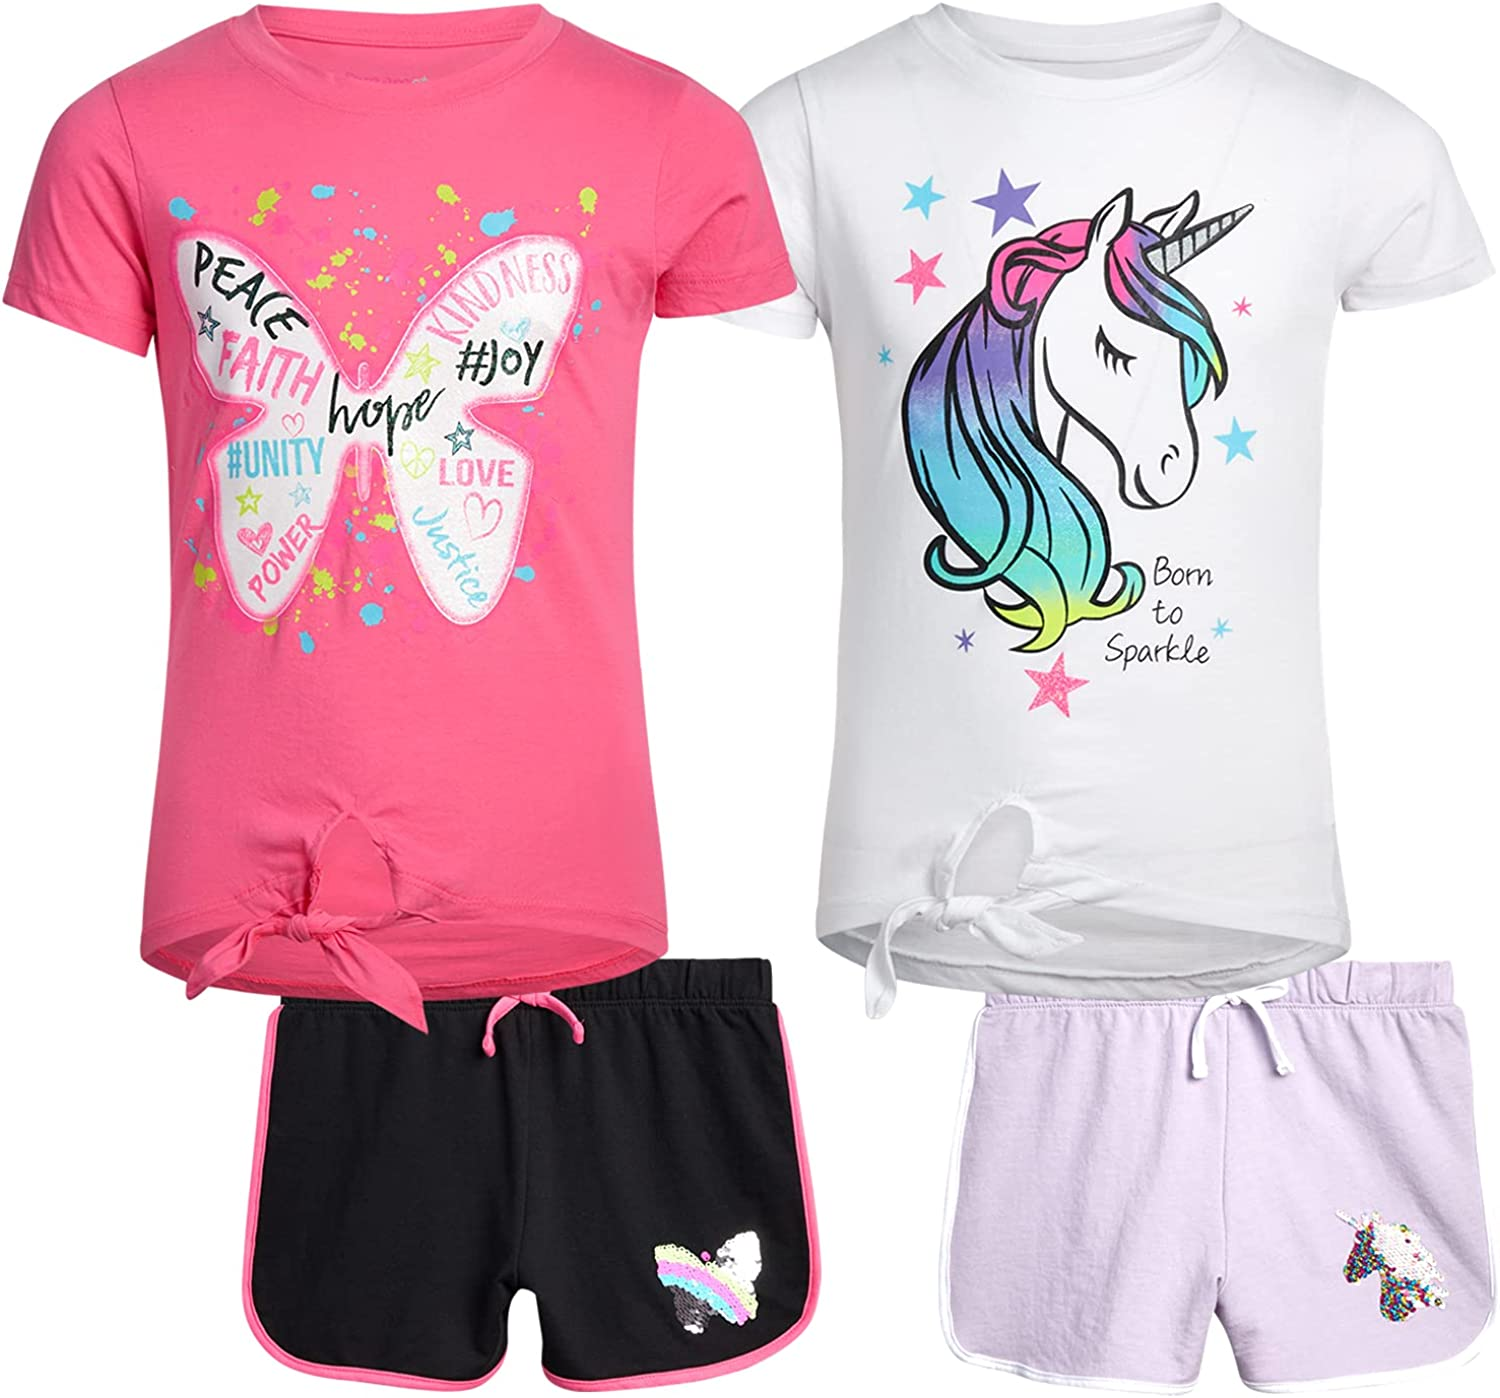 Dreamstar Girls' trust Shorts Set Max 50% OFF - 4 Terry Piece Sh French and